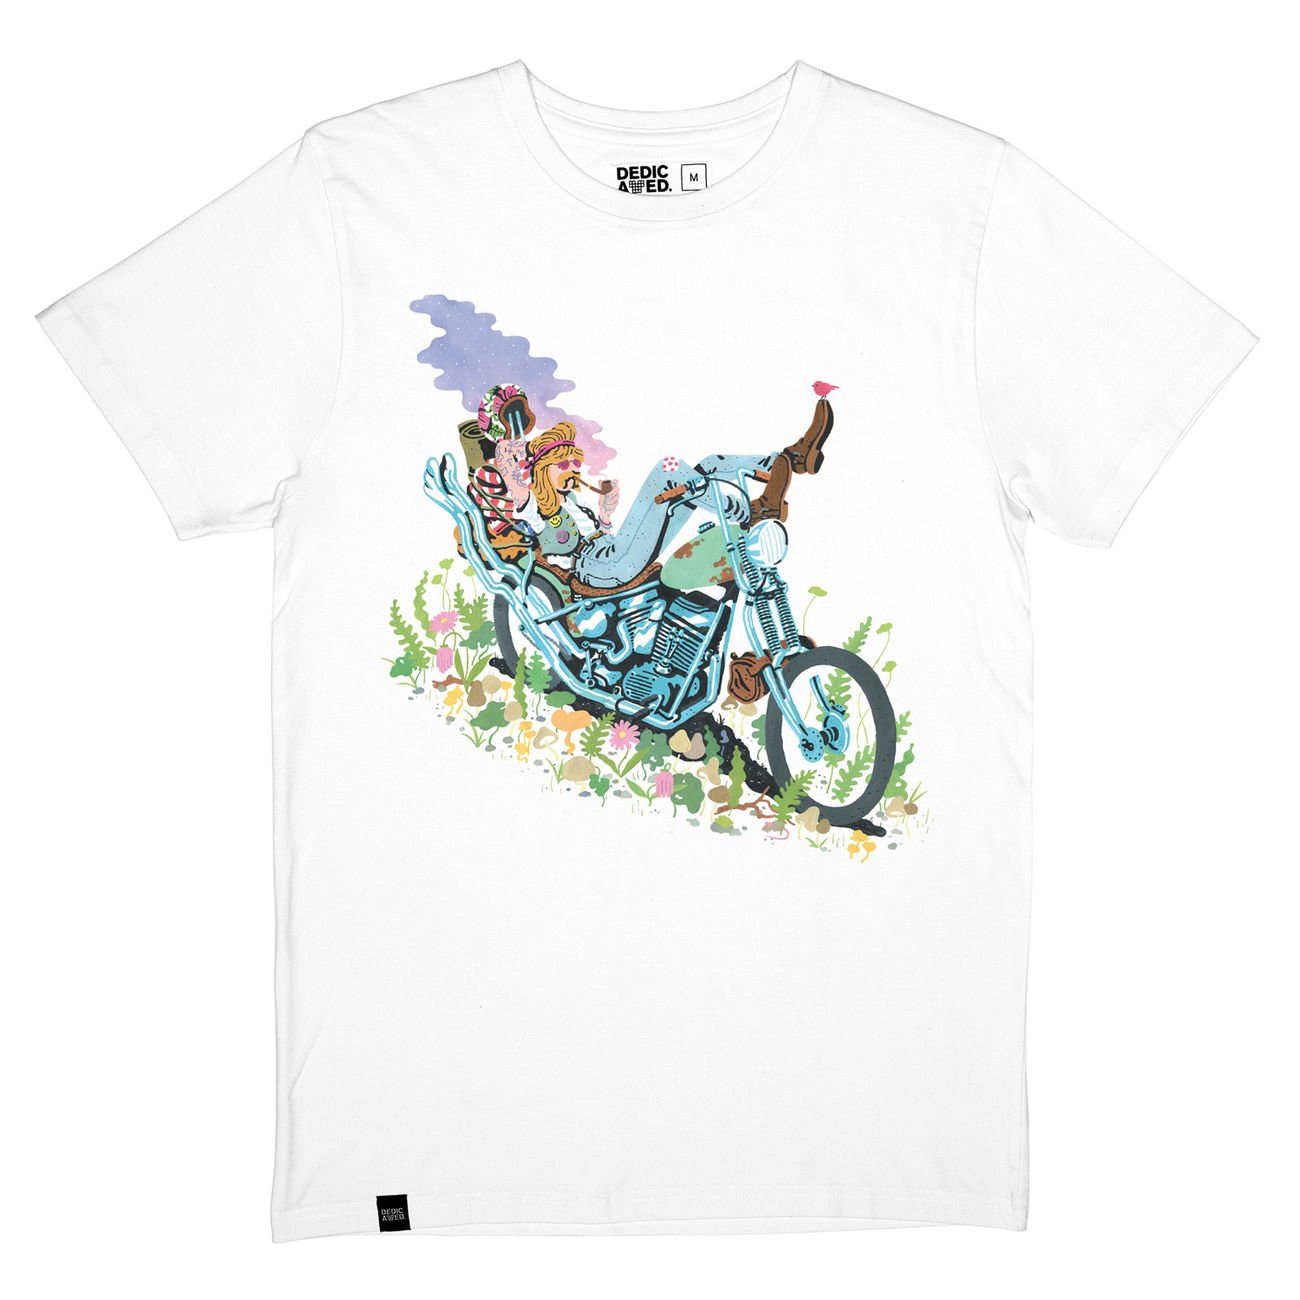 Stockholm T-shirt Ride Easy